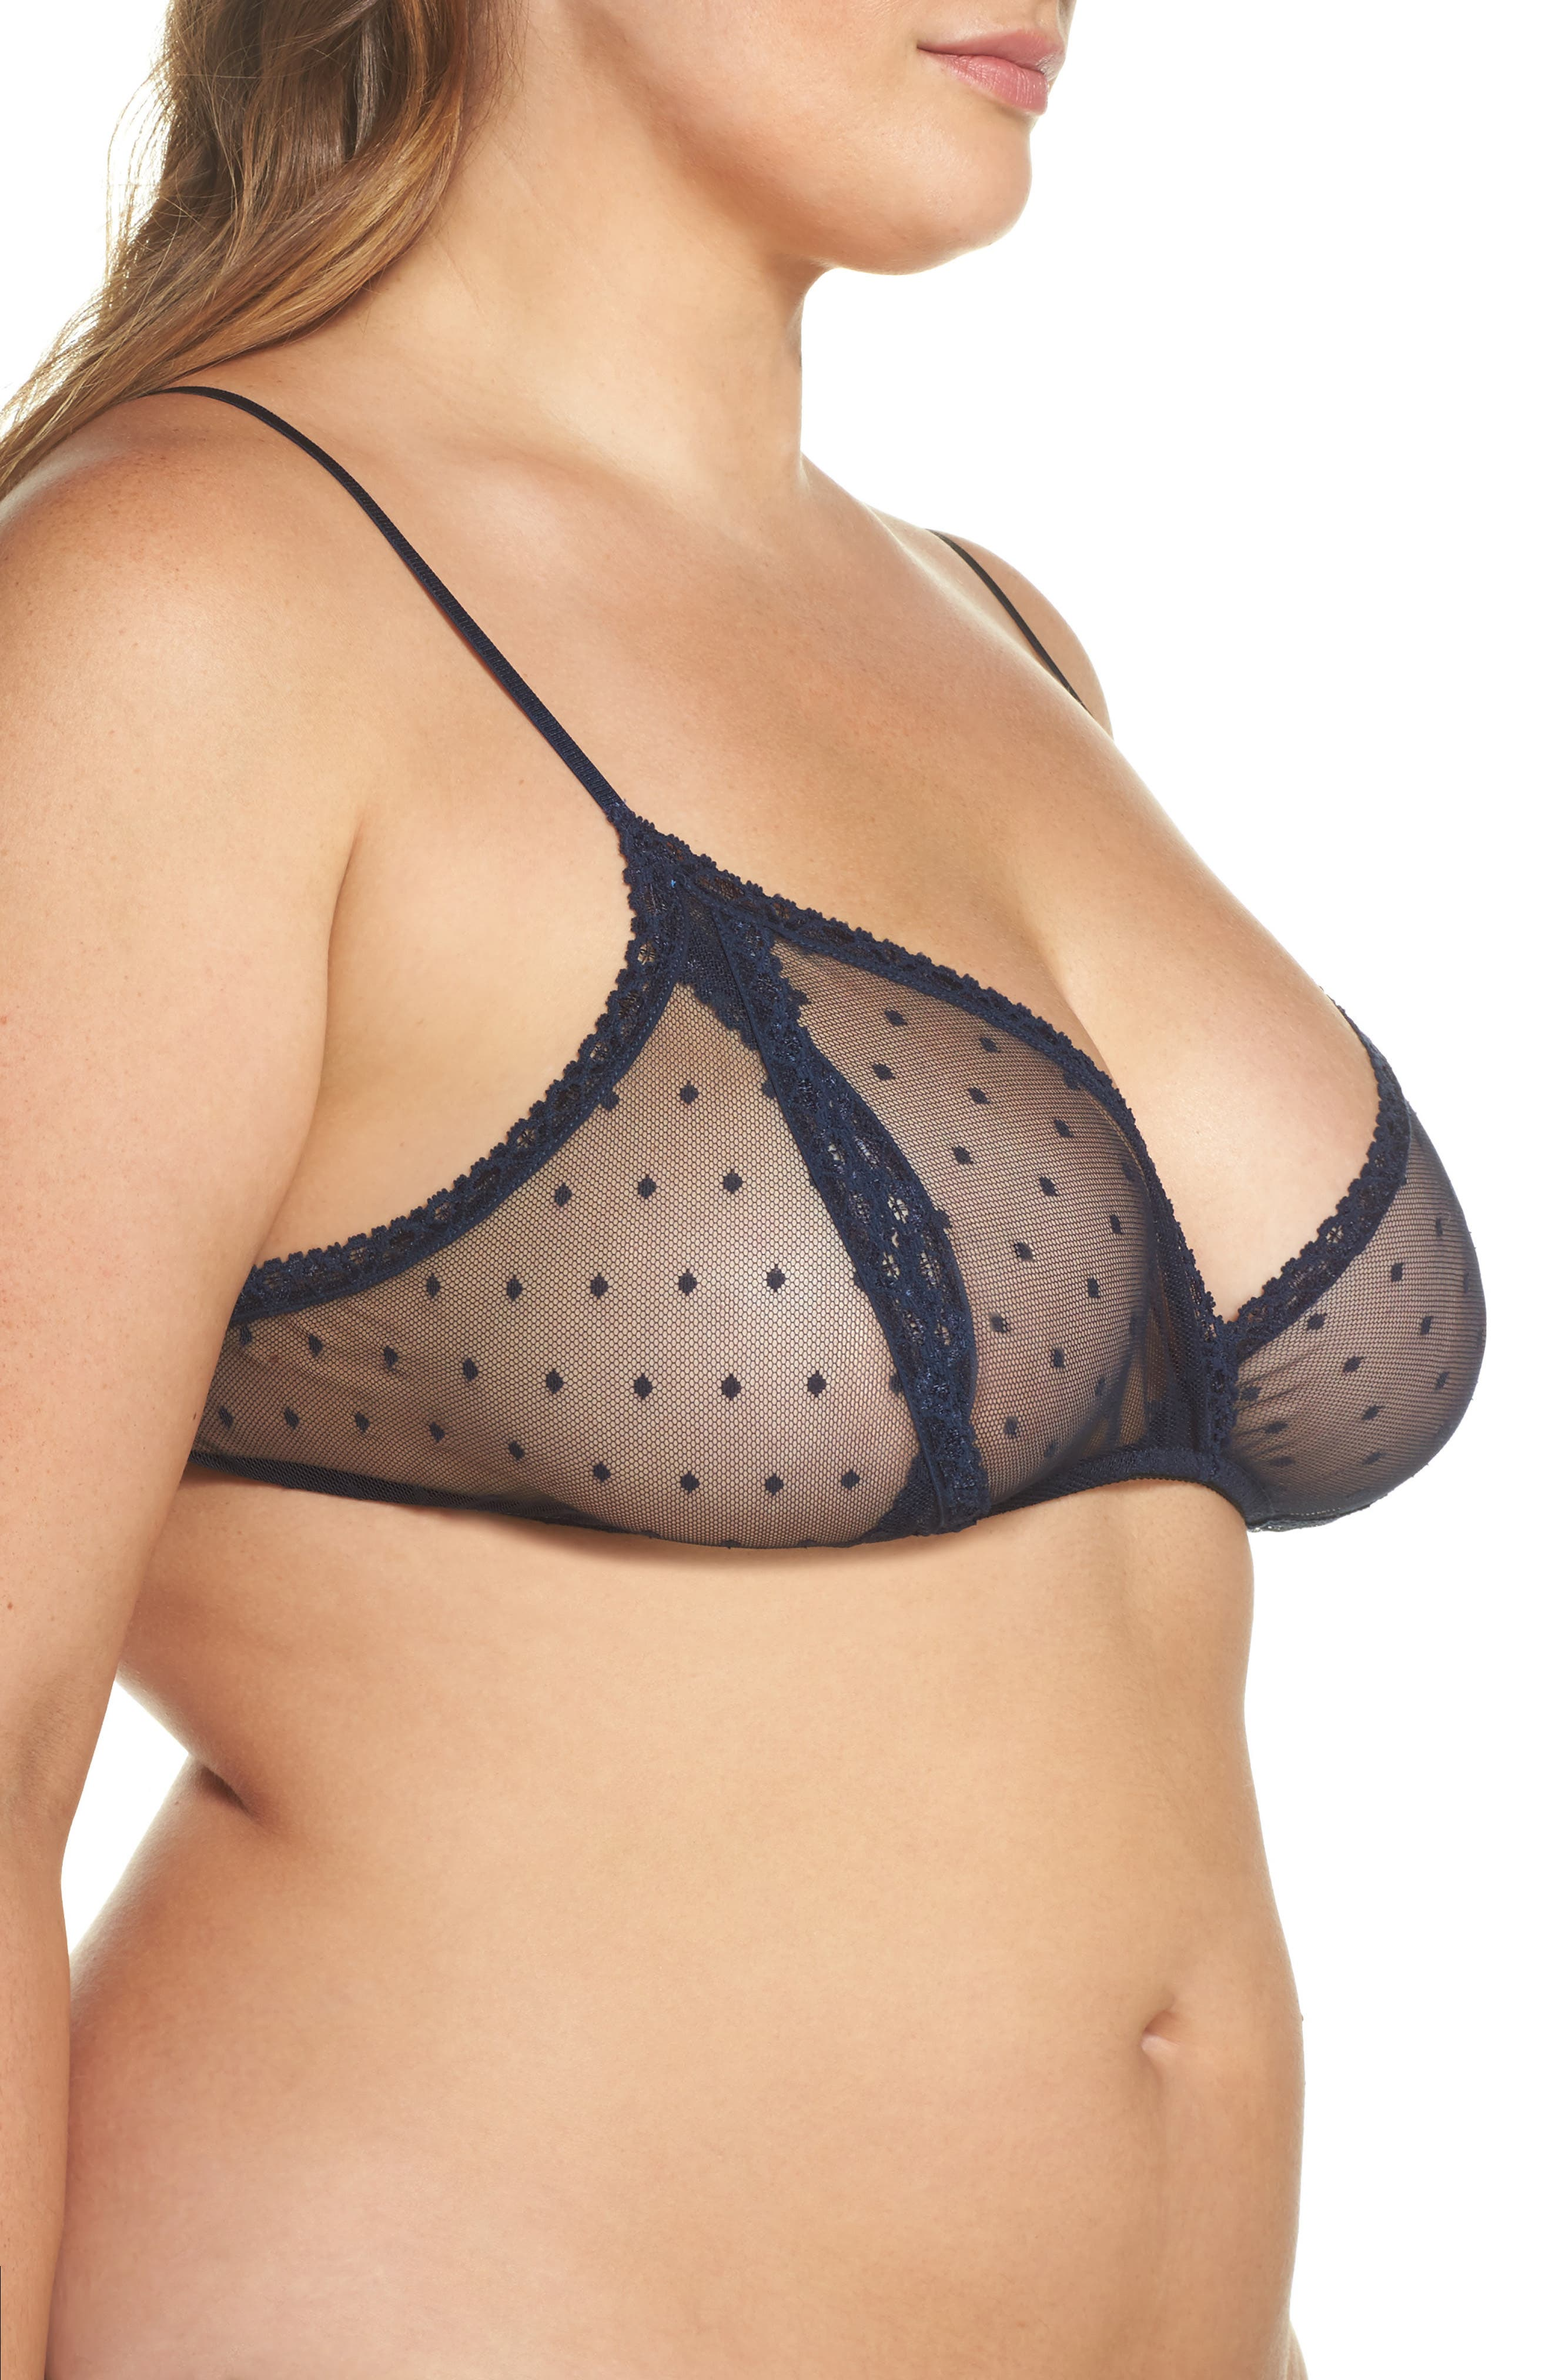 Alternate Image 3  - Only Hearts 'Coucou Lola' Sheer Bralette (Plus Size)